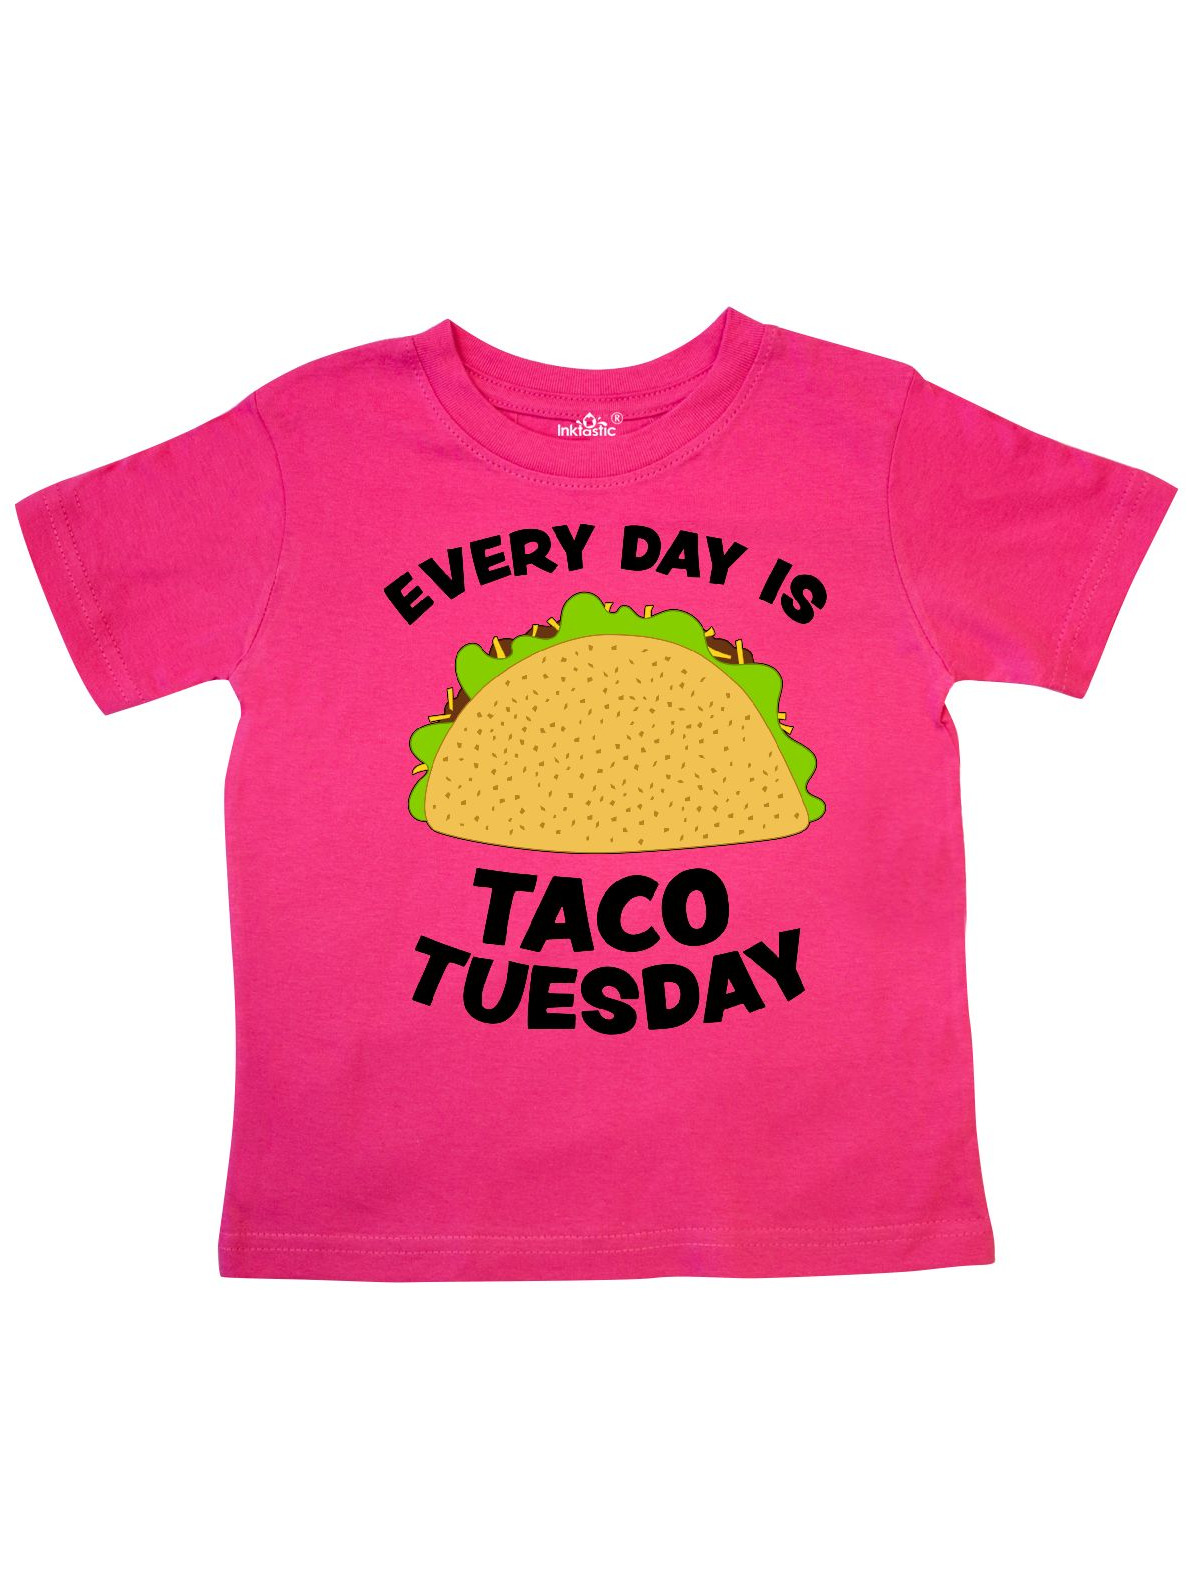 5cf49ca46 Inktastic - Every Day is Taco Tuesday Toddler T-Shirt - Walmart.com